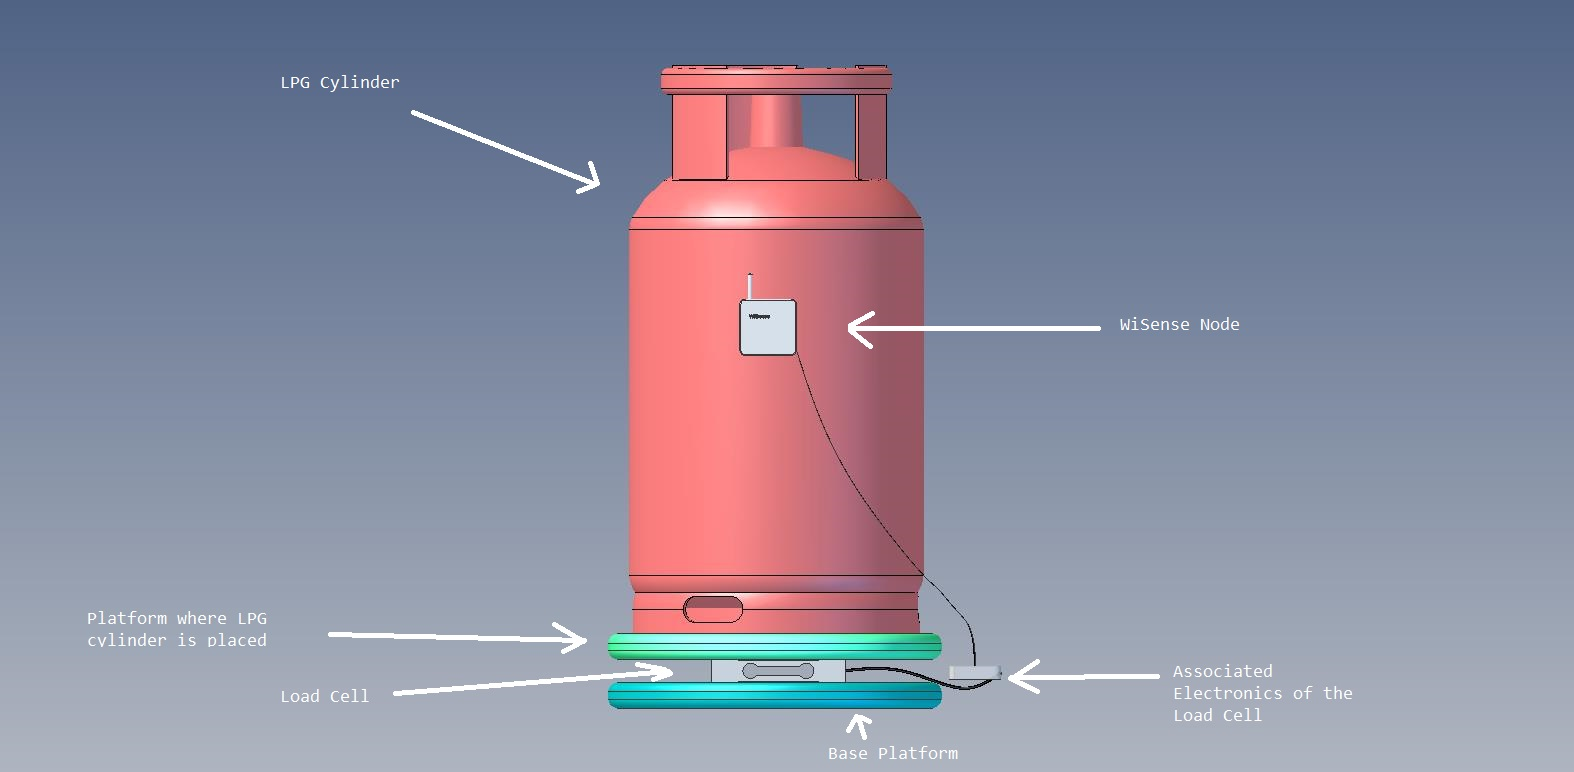 Lpg Cylinder Continuous Usage Monitoring